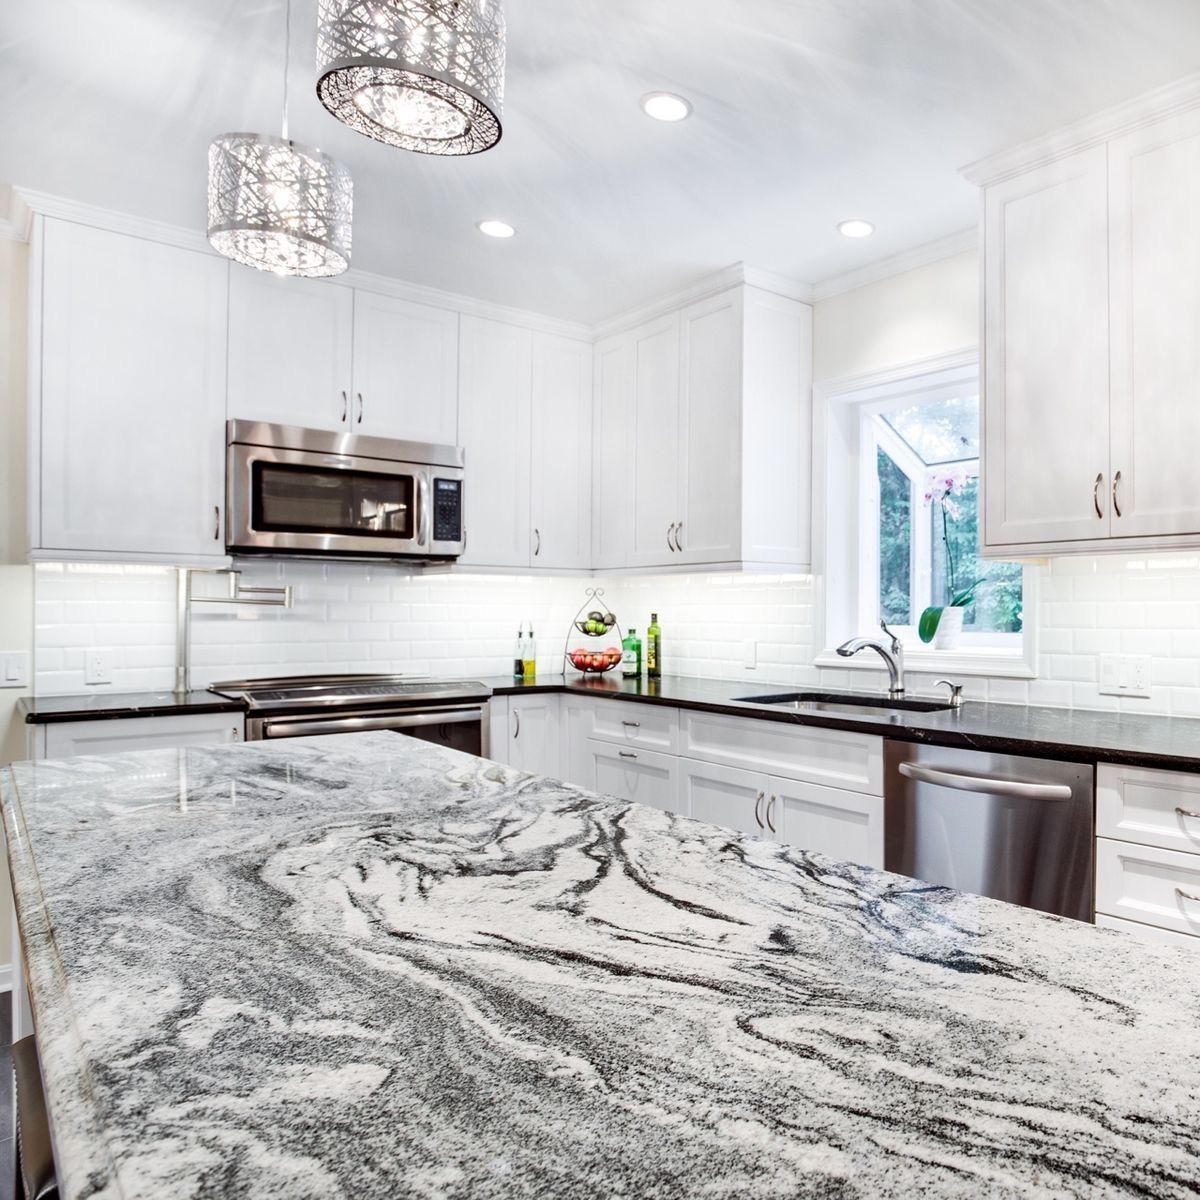 Viscon White Granite Kitchen Ideas Pinterest White: white kitchen cabinets with granite countertops photos